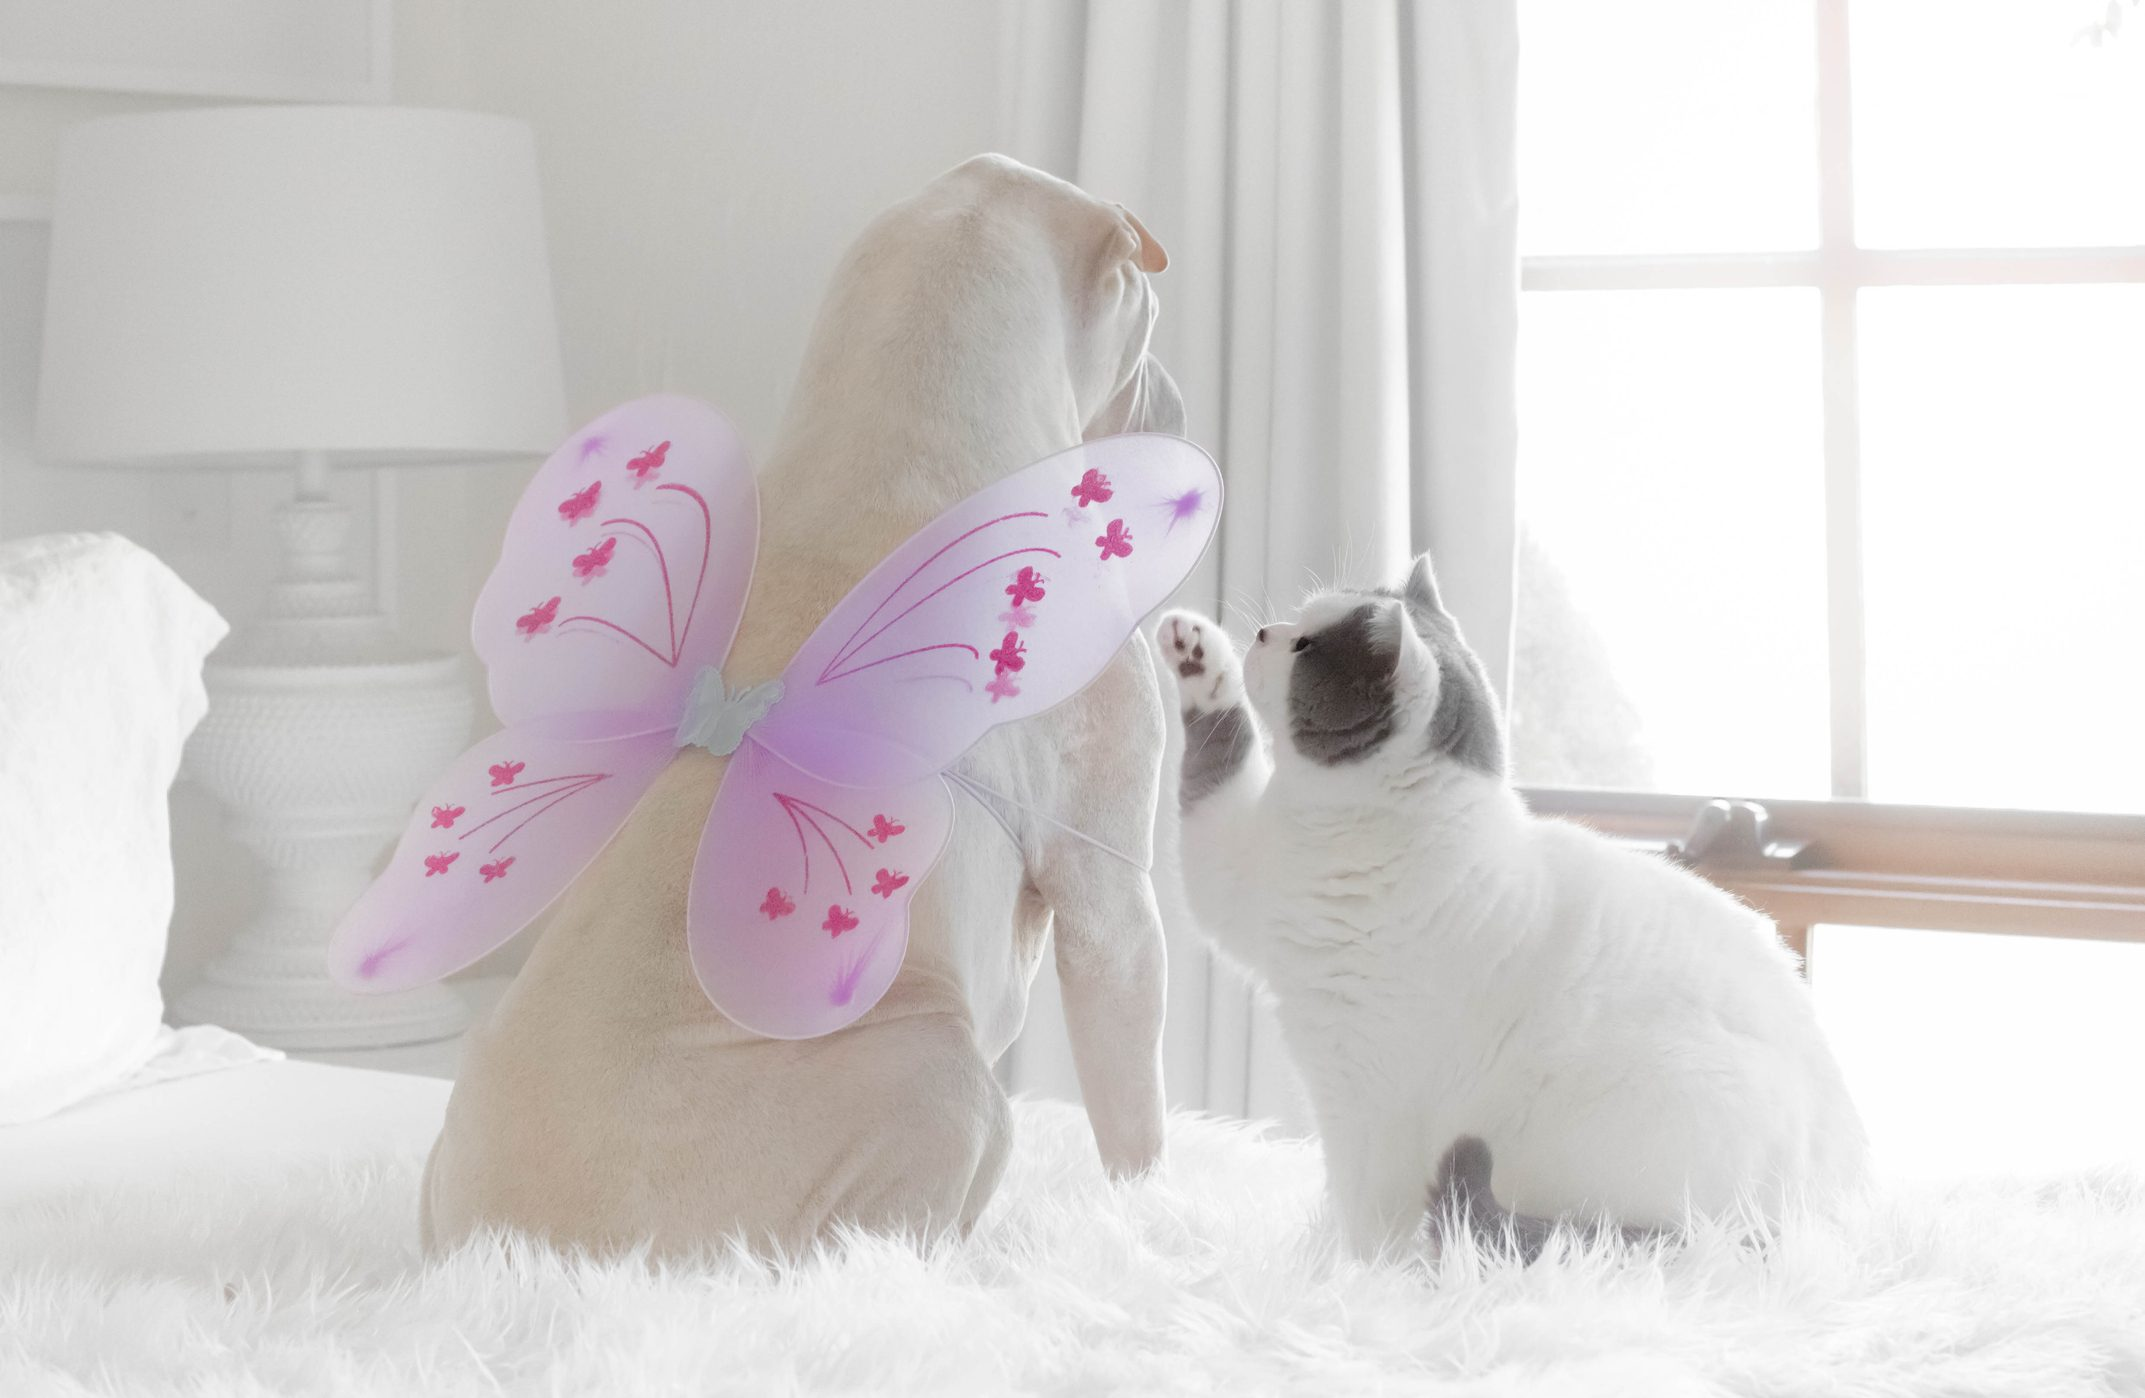 shar-pei dog wearing butterfly wings playing with a British shorthair cat